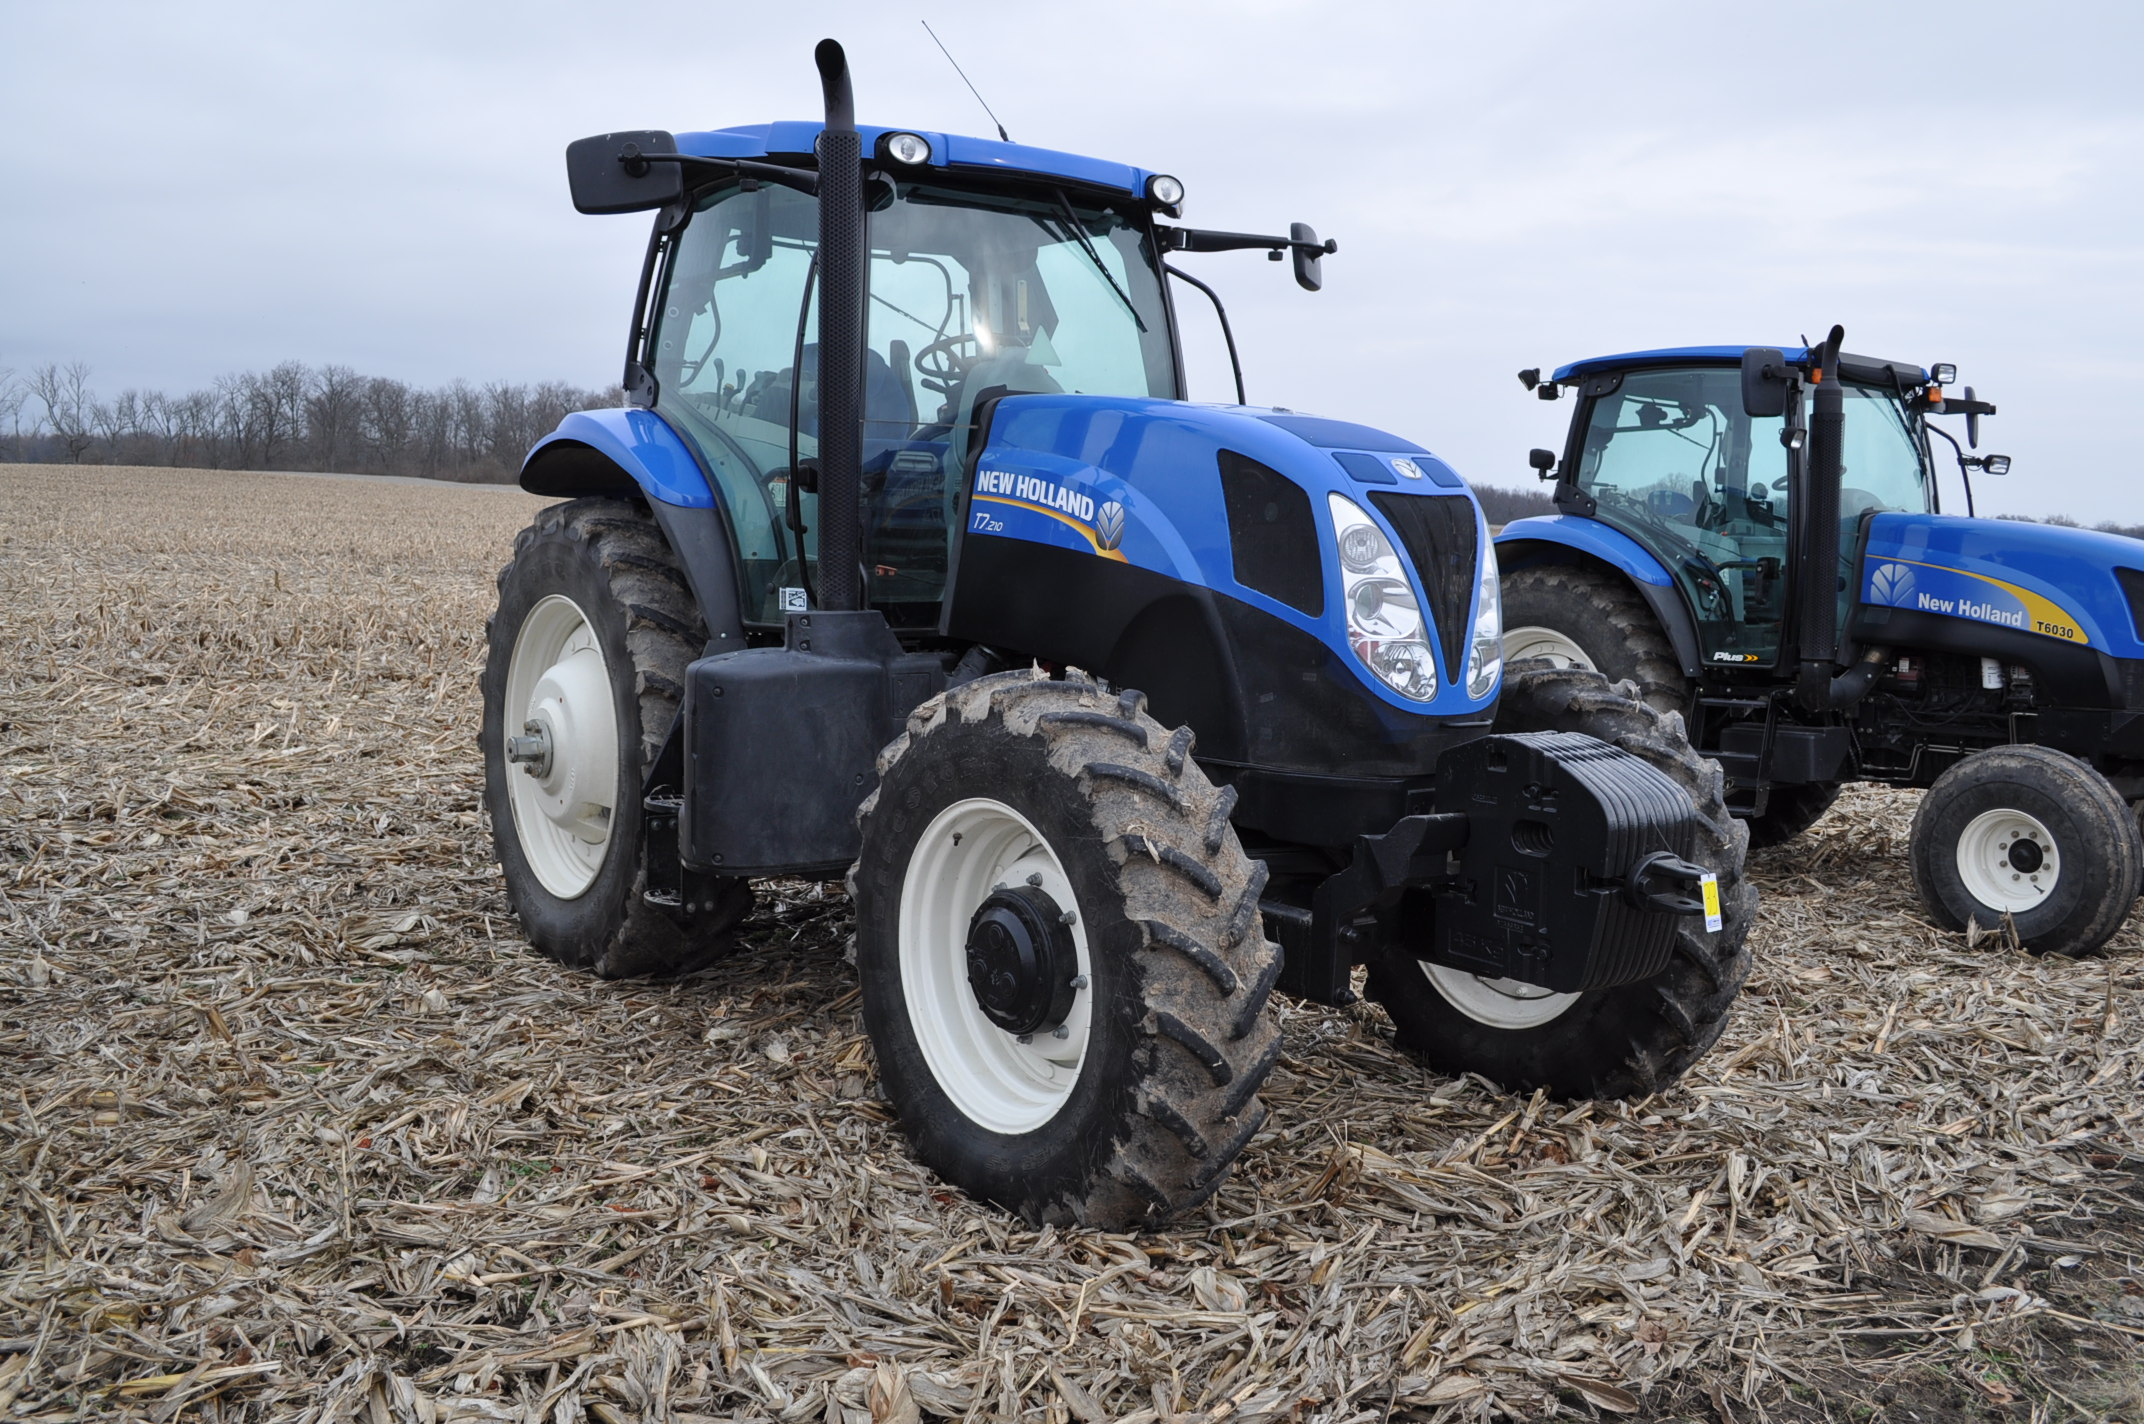 New Holland T7.210 MFWD tractor, 460/85 R 42 rear, 380/85 R 30 Firestone front, Super Steer - Image 4 of 24